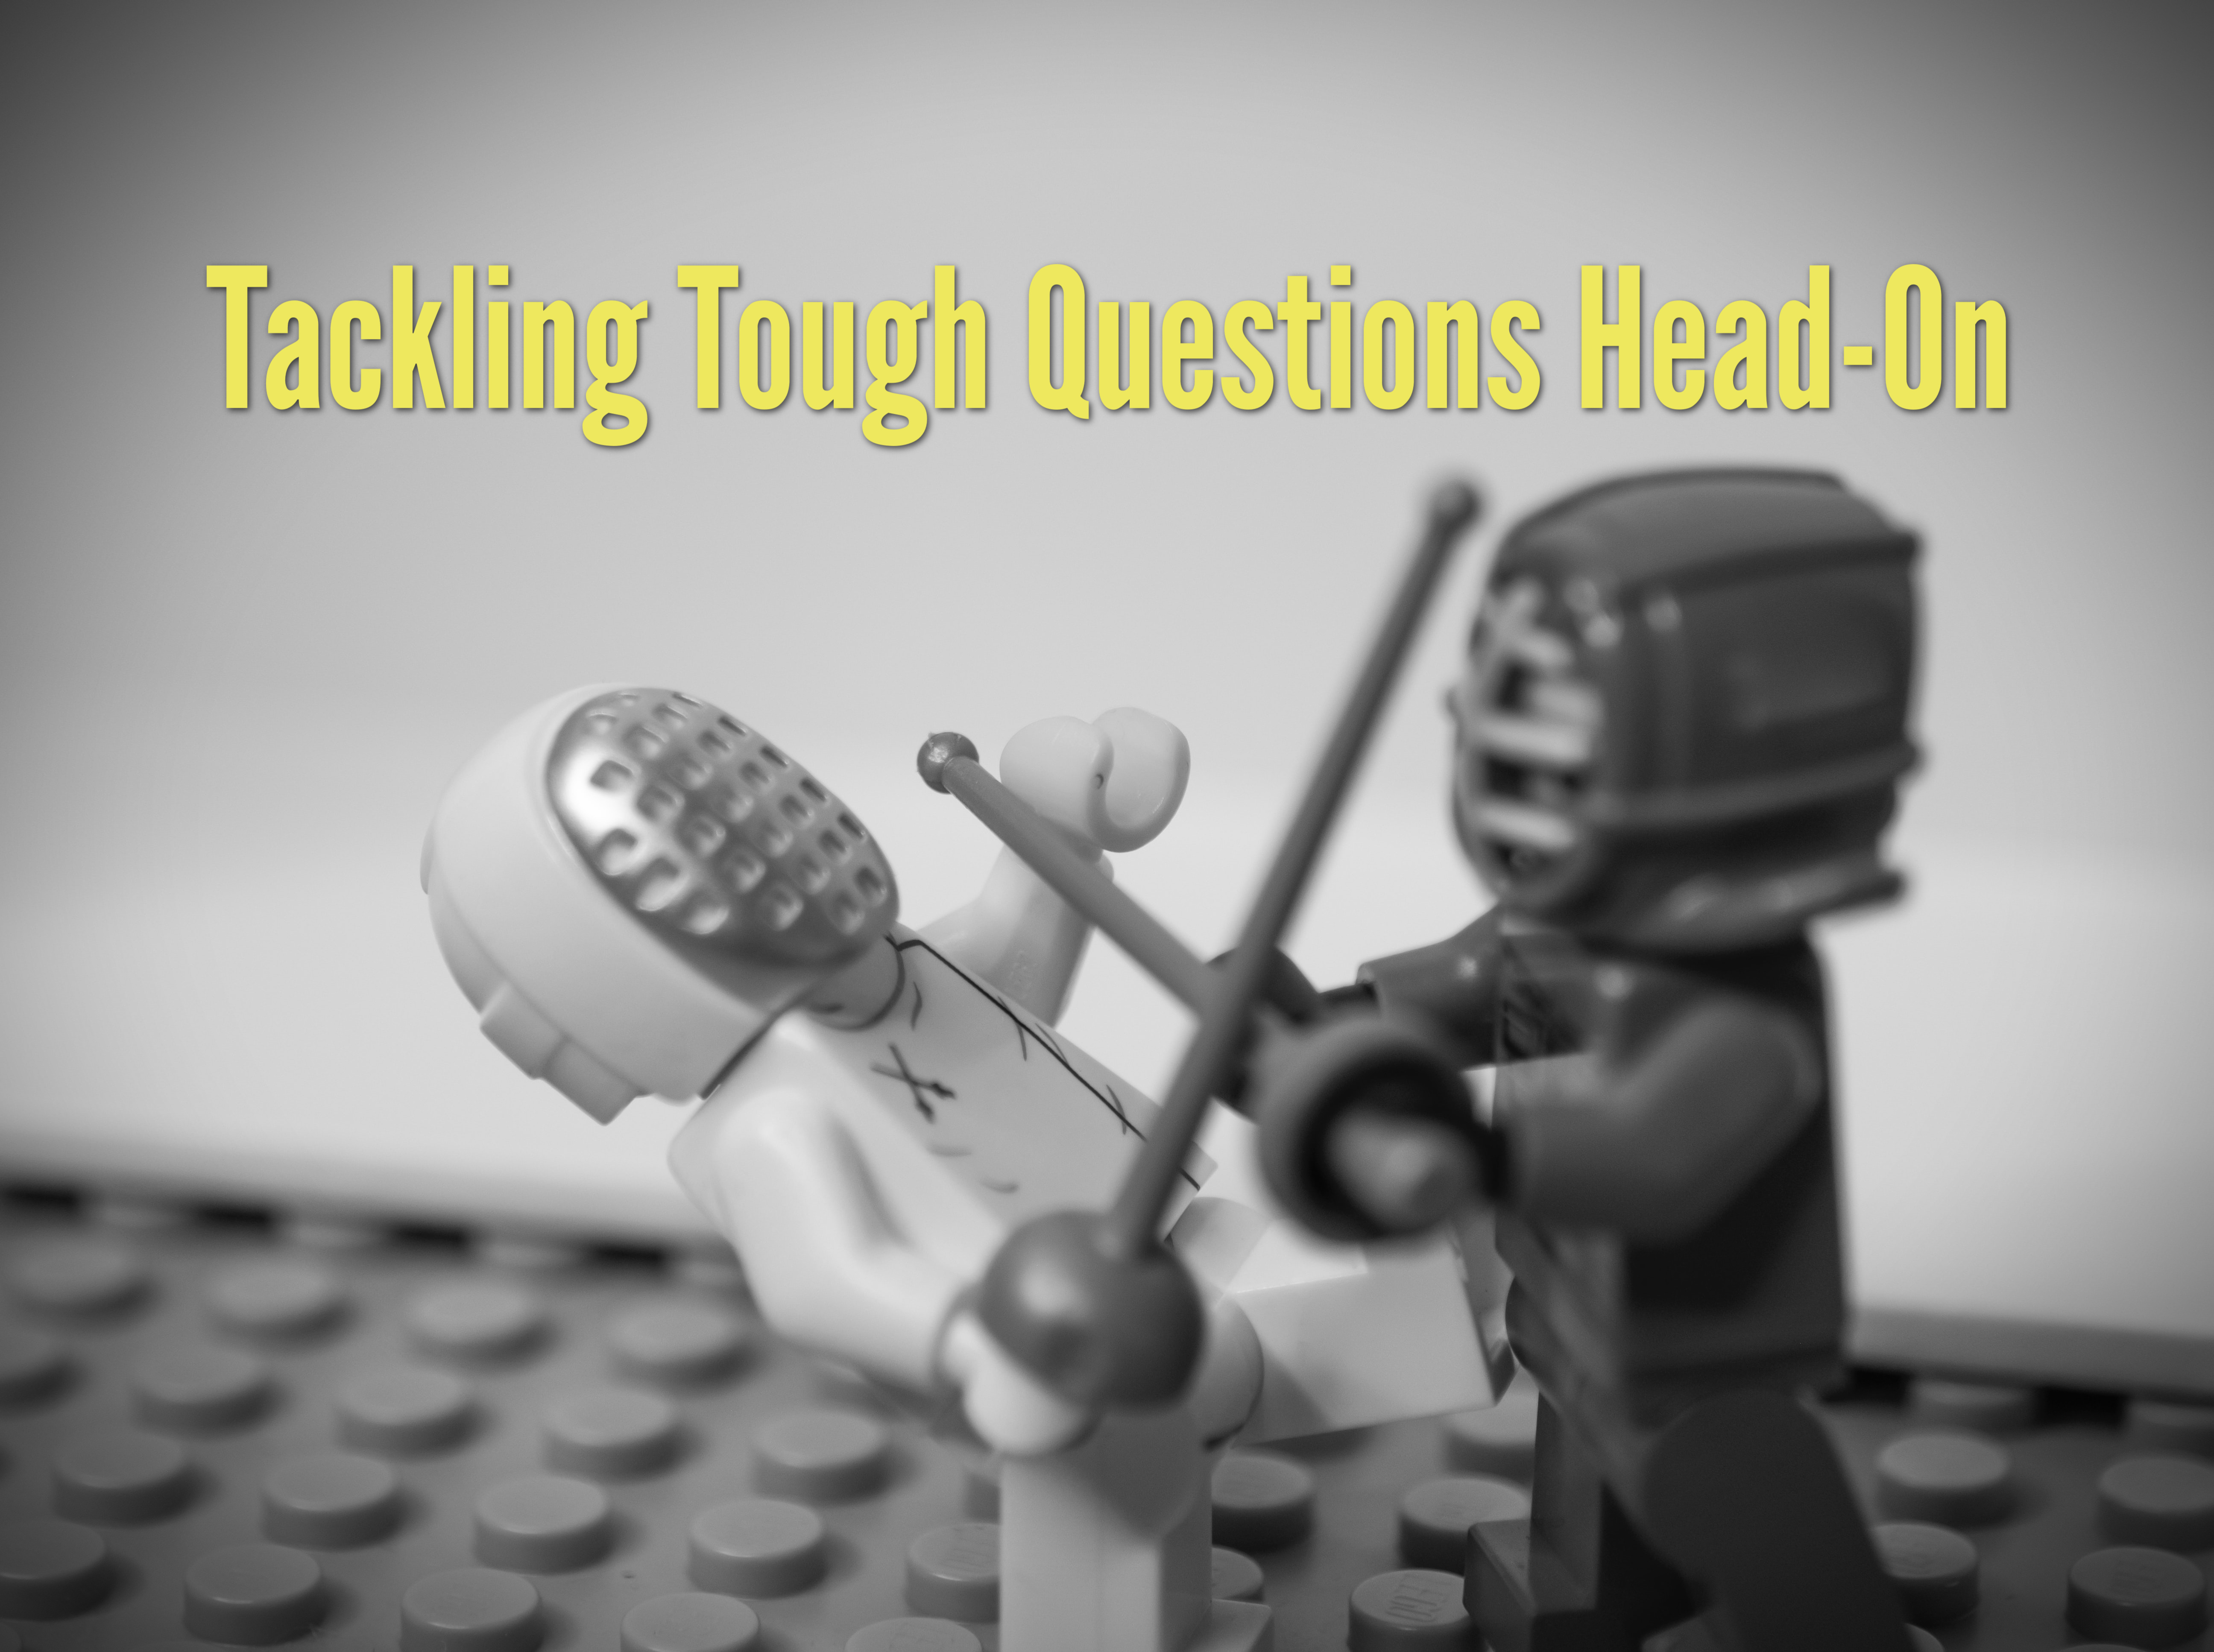 Tackling Tough Questions Head-On